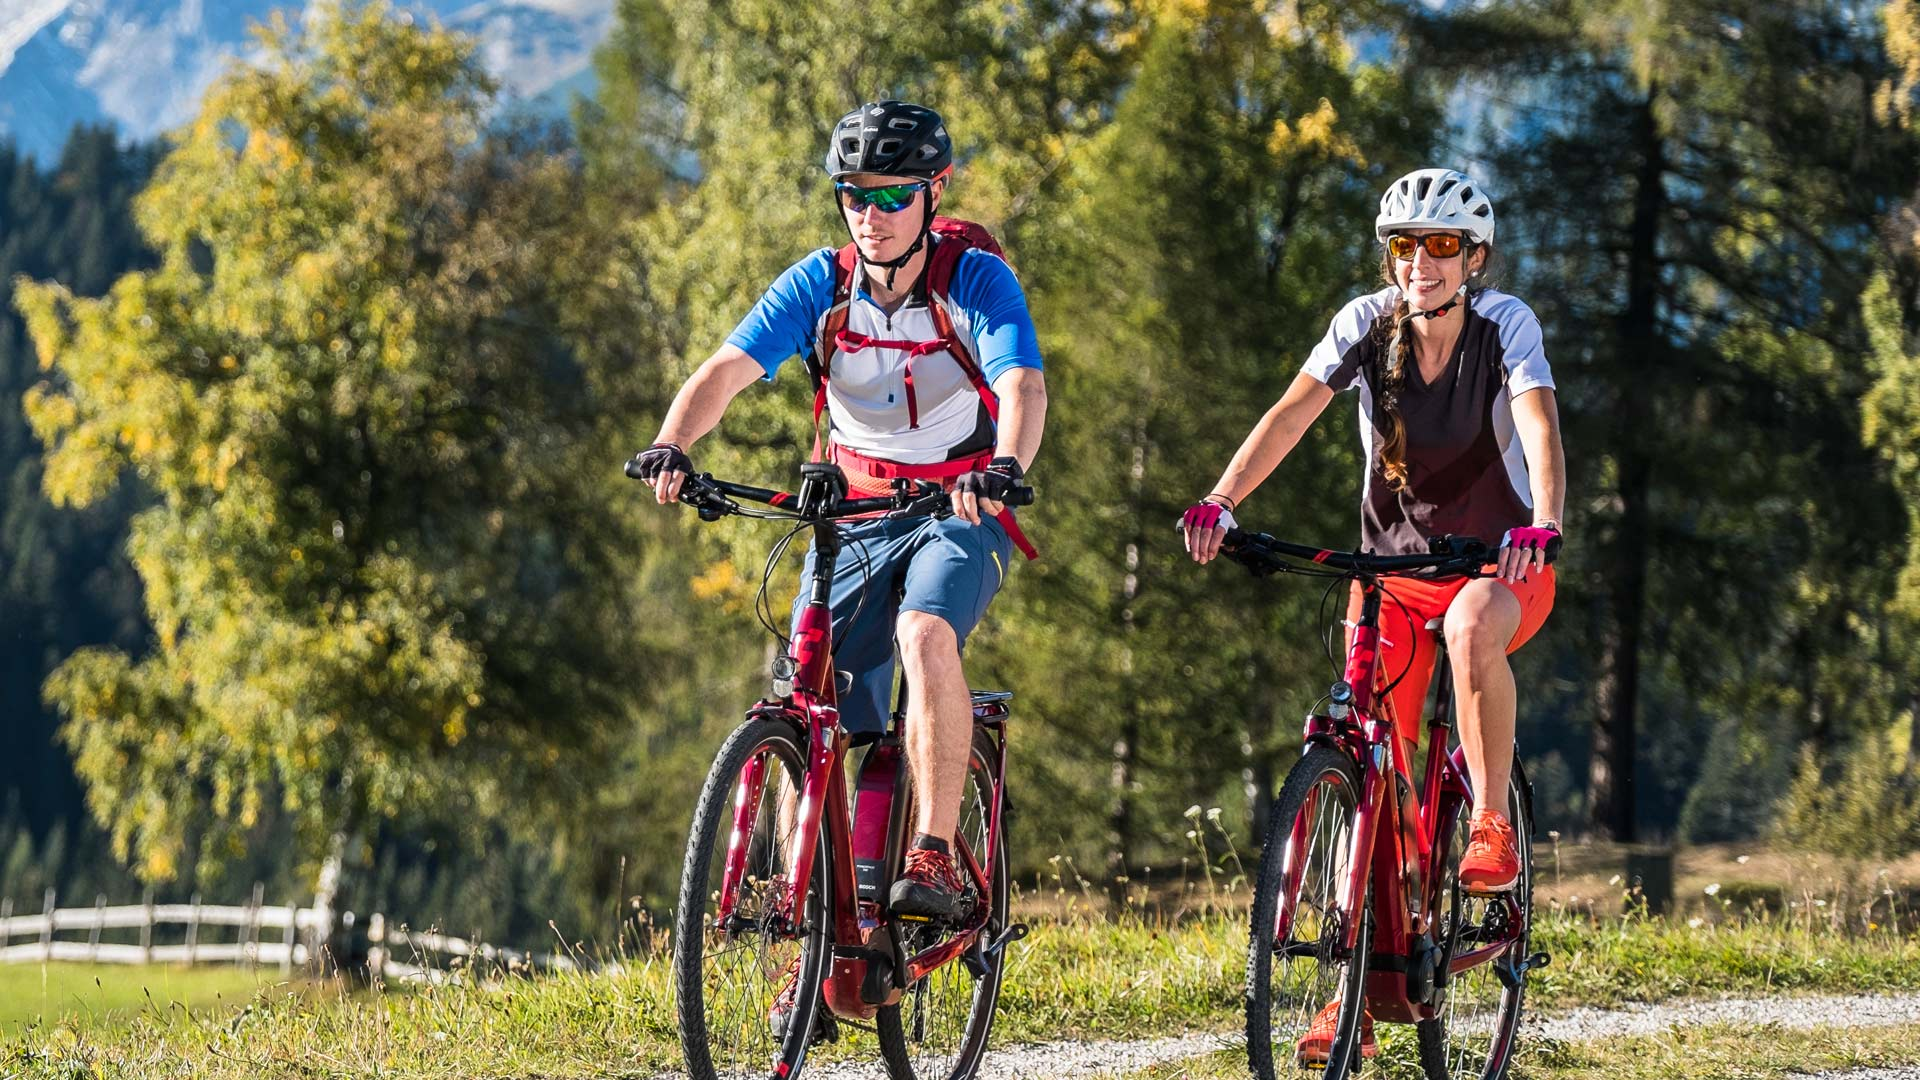 Angebot Mountainbike Hotel in Seefeld